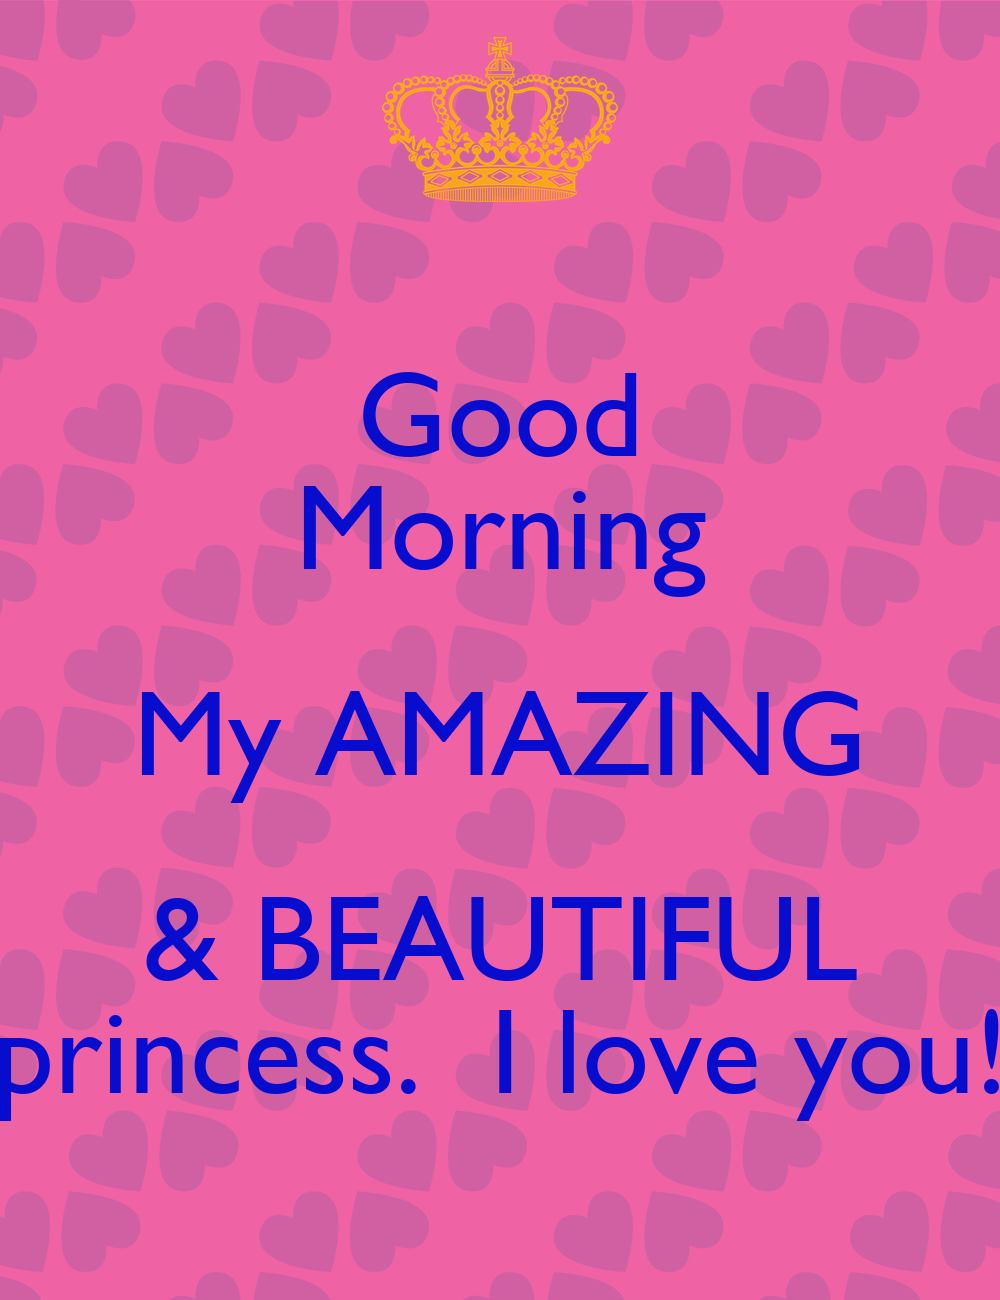 Good Morning My Love Lovingyou : The gallery for gt i love you princess